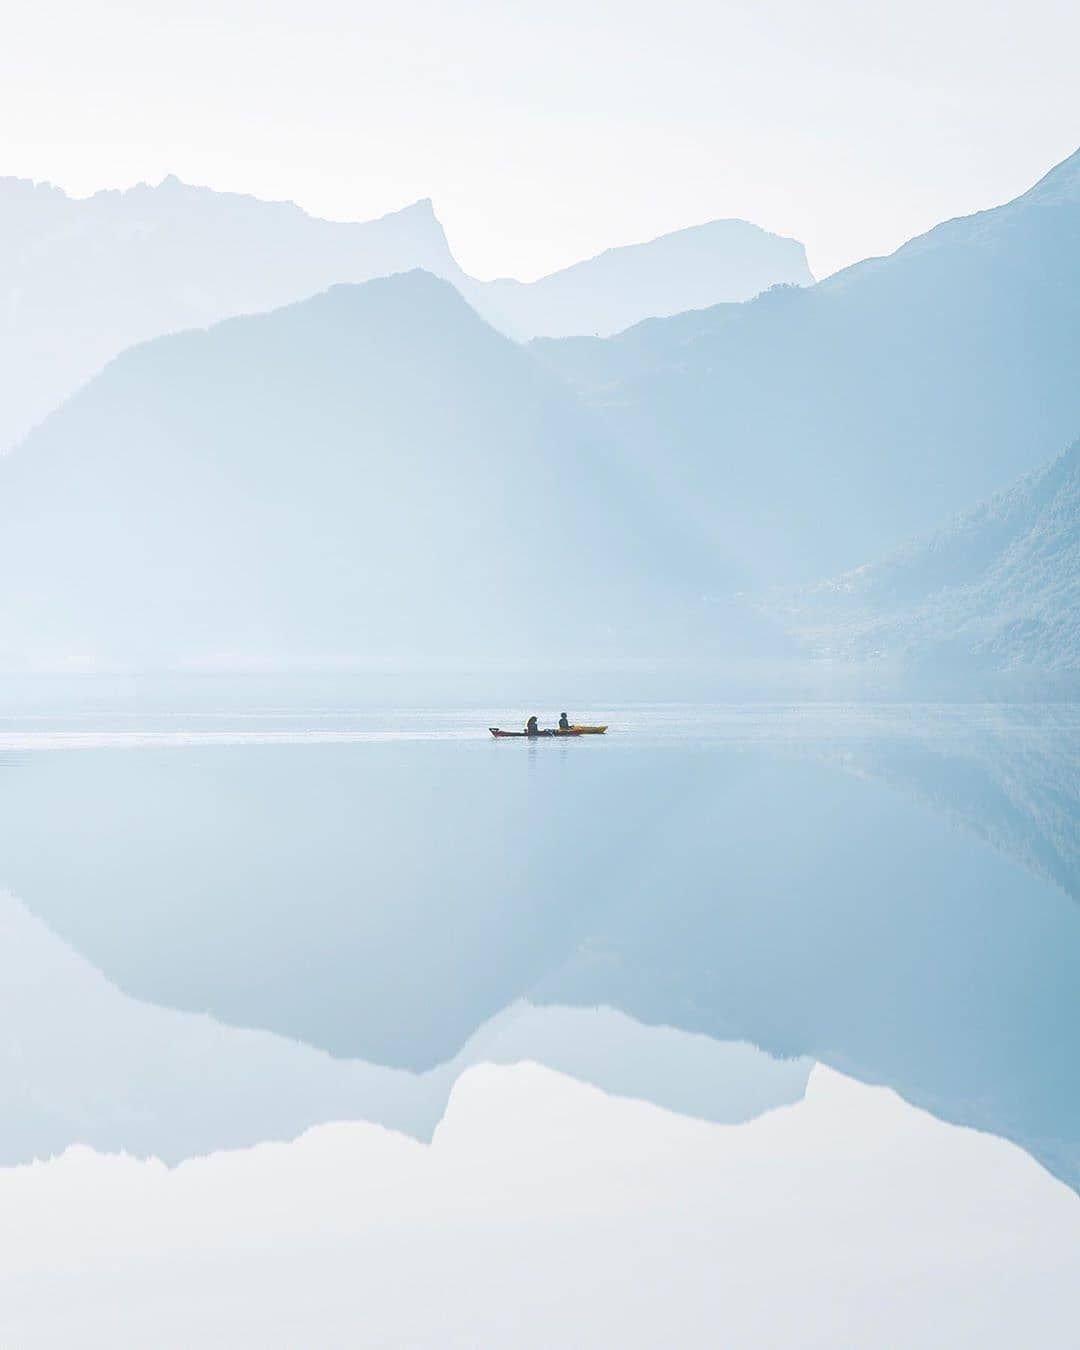 """""""Paddling on a mirror"""", peaceful photo by @KuhrMarvin at ..."""